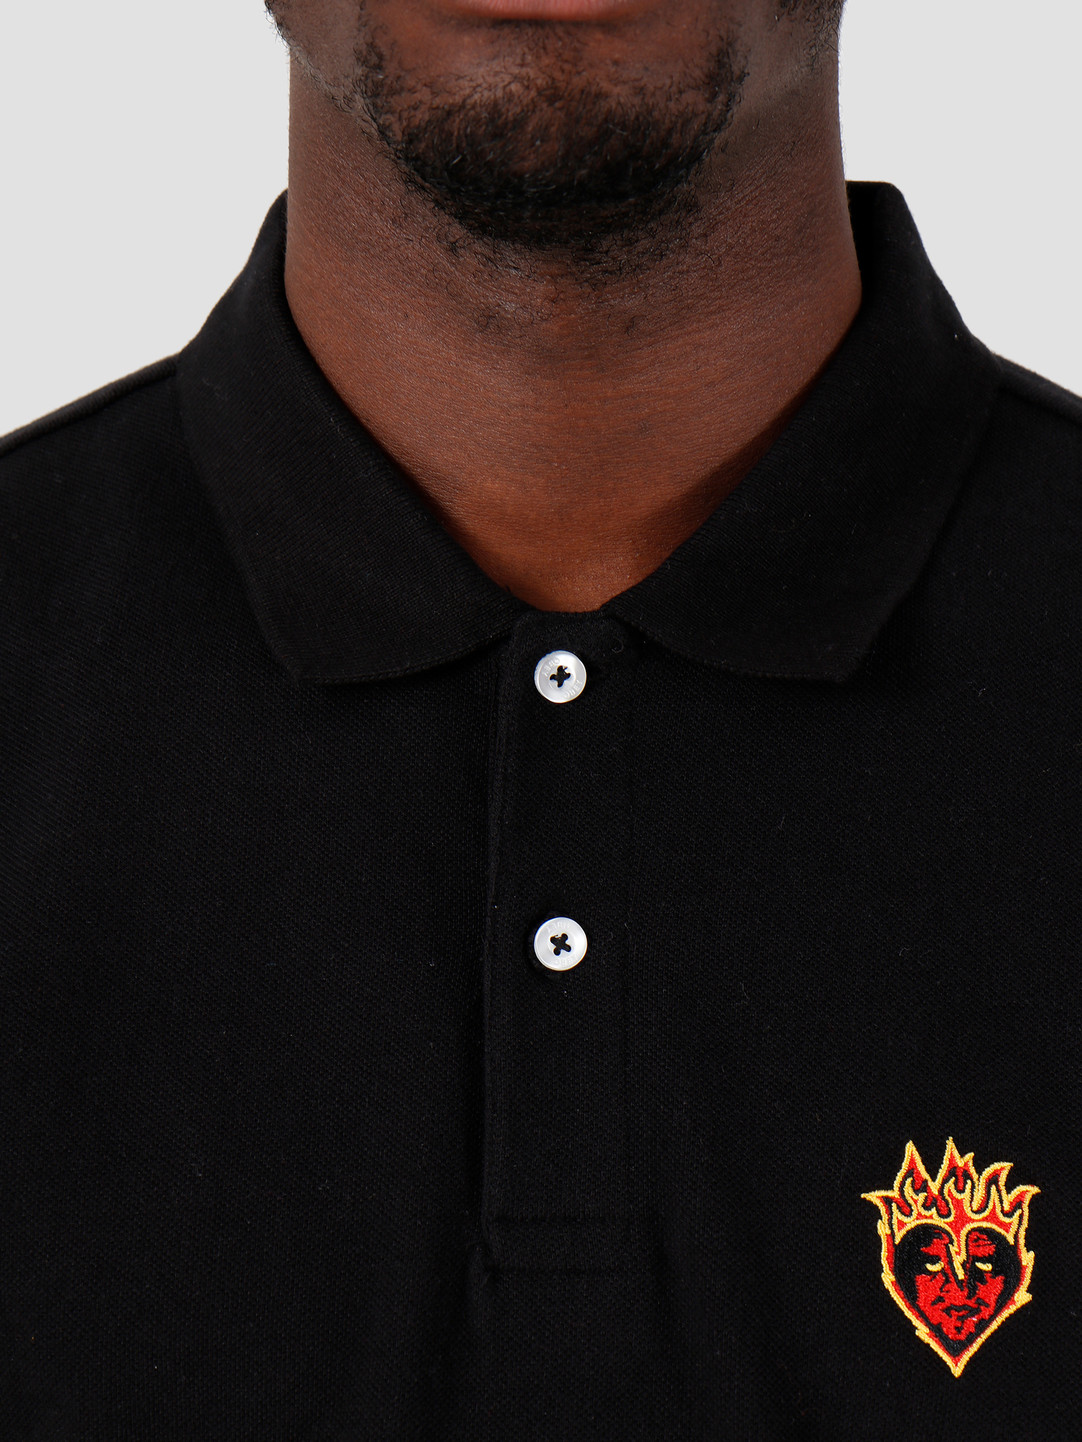 Obey Obey Giant Heart Polo Black 131090050-BLK